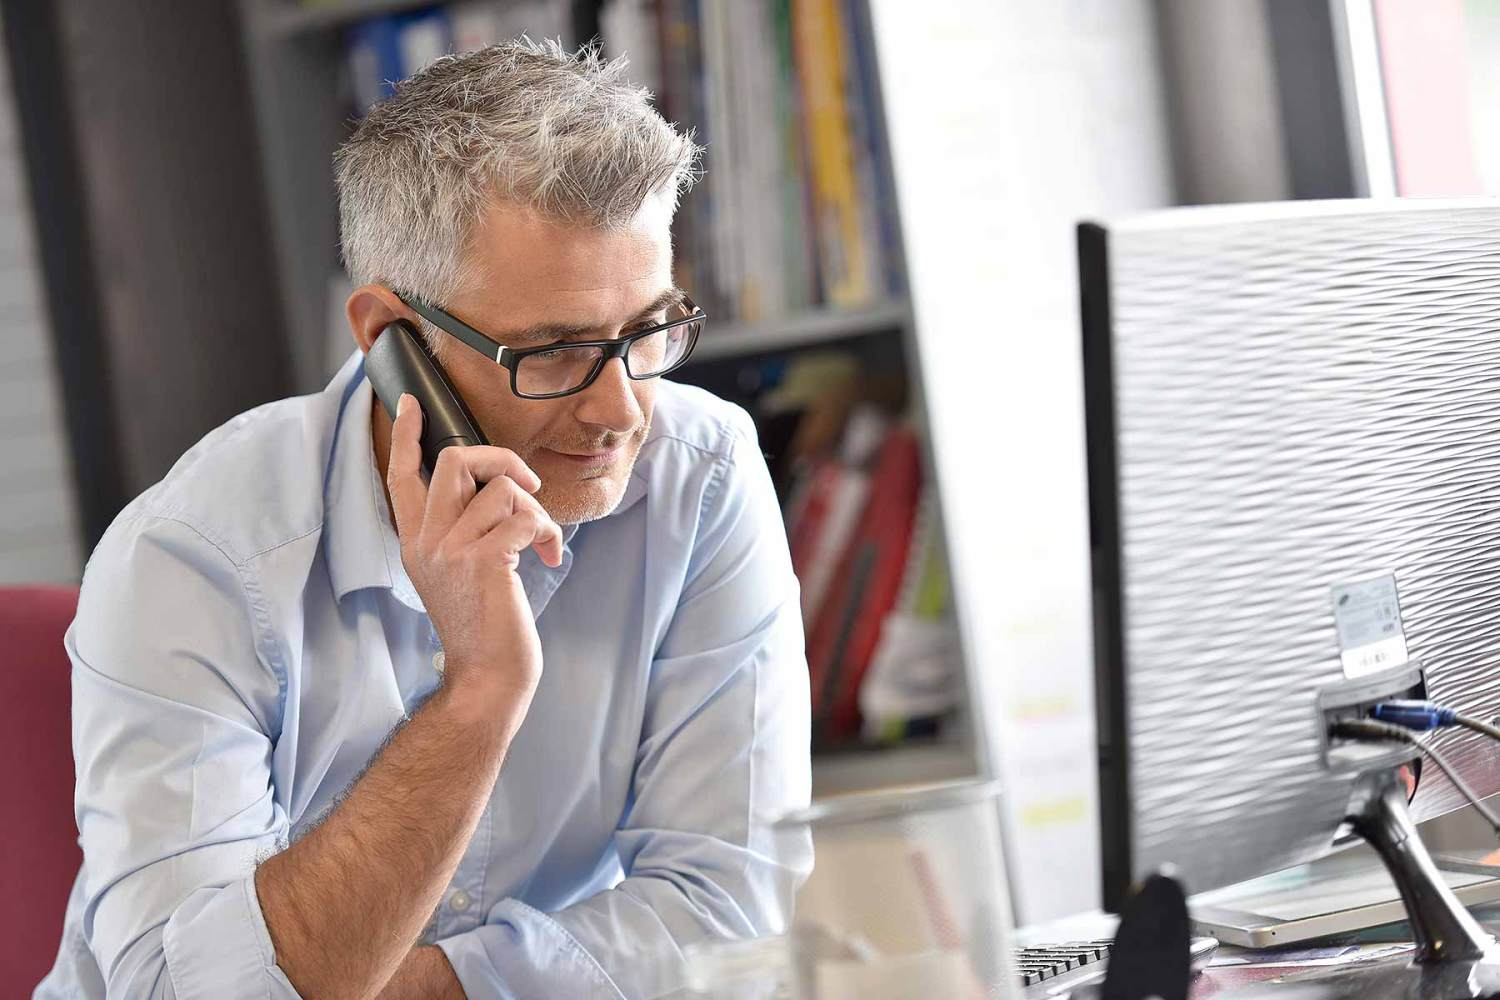 Calling your car insurance company to haggle can save you hundreds